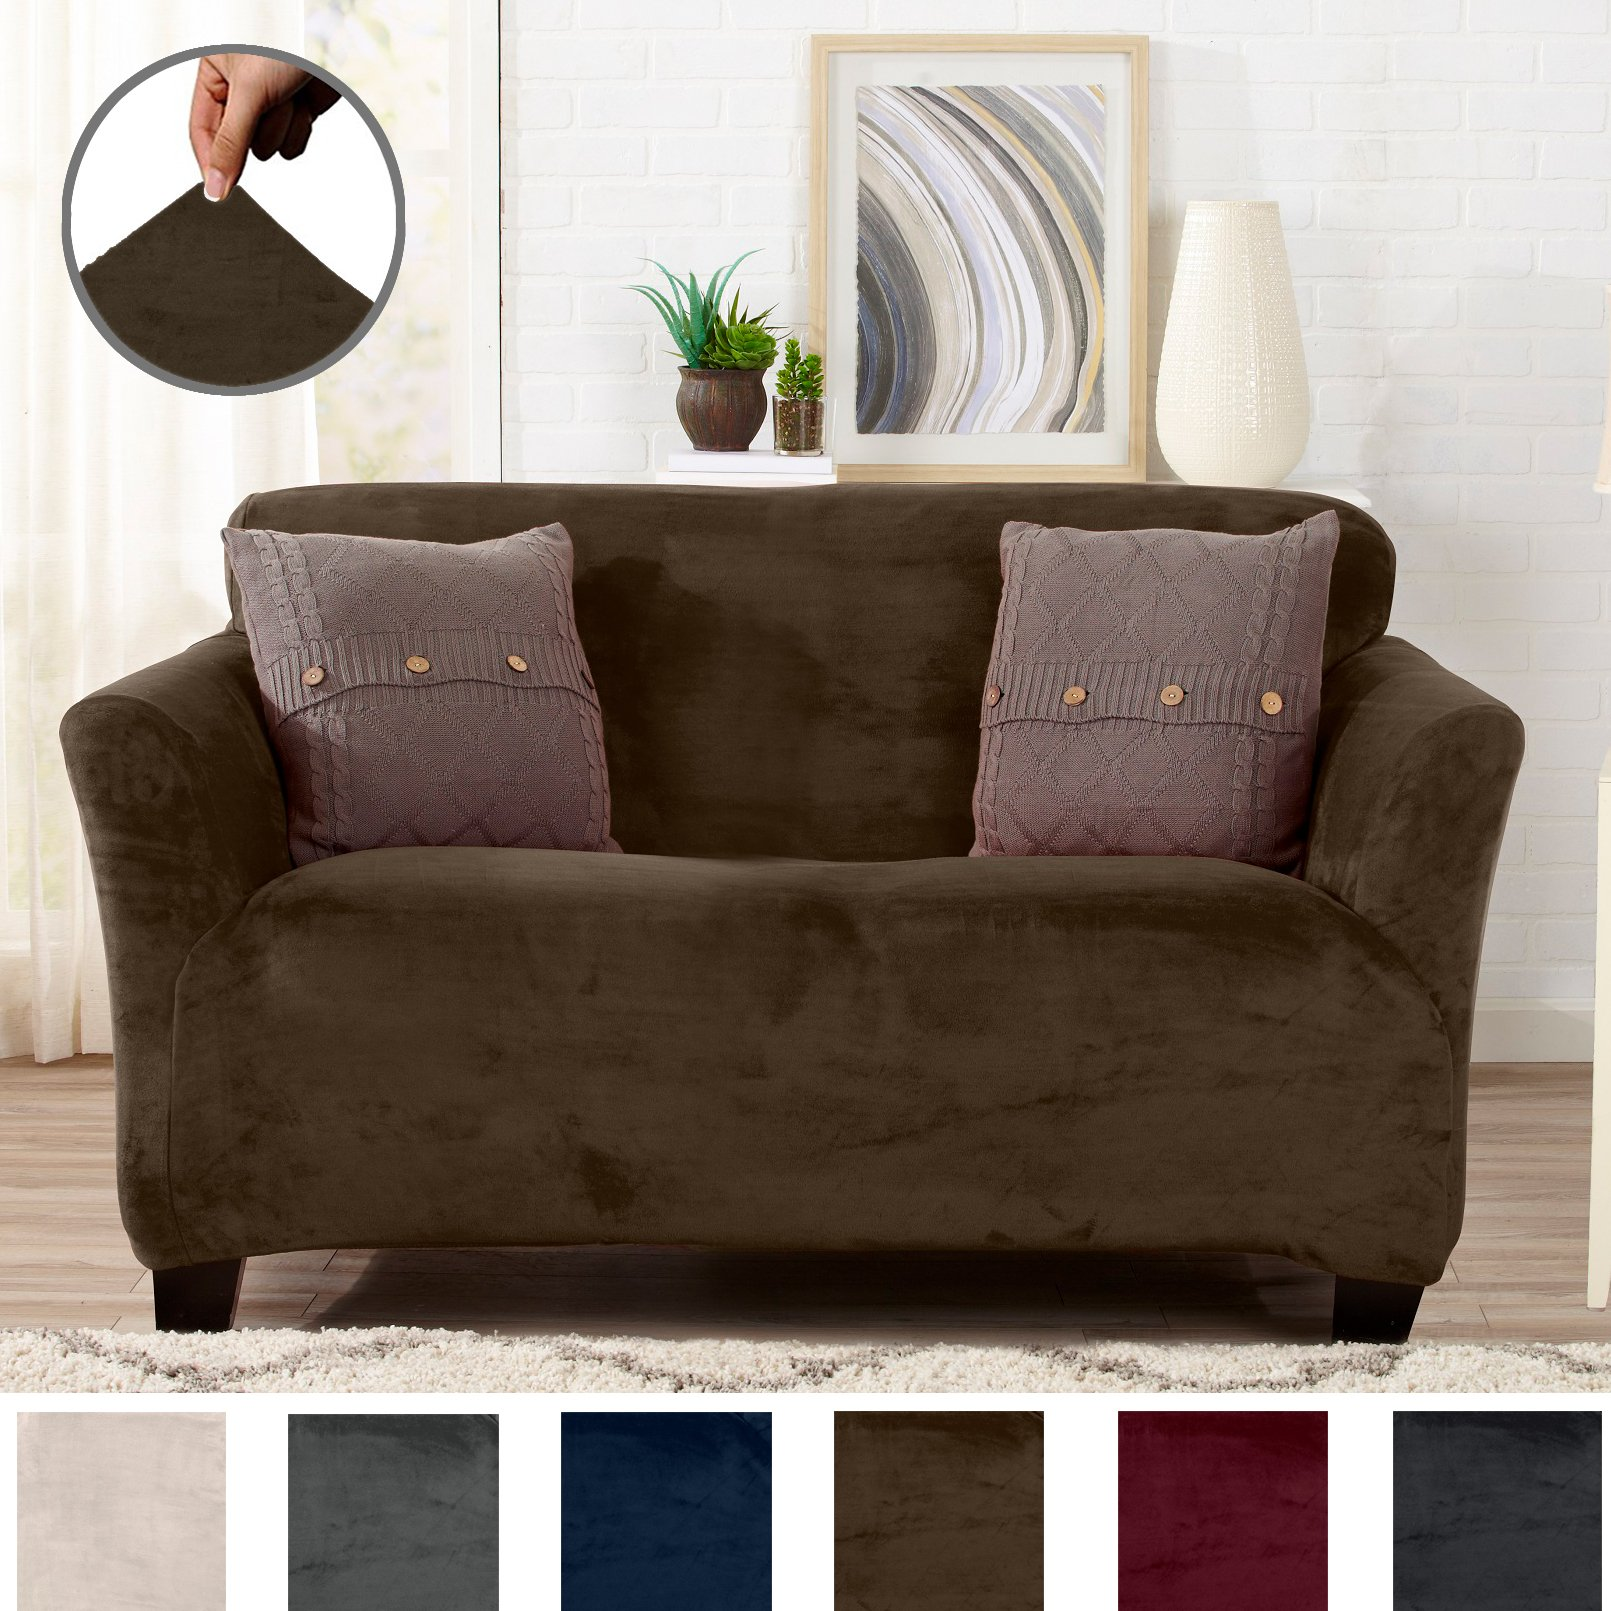 Great Bay Home Modern Velvet Plush Strapless Slipcover. Form Fit Stretch, Stylish Furniture Cover/Protector. Gale Collection Brand. (Loveseat, Walnut Brown)